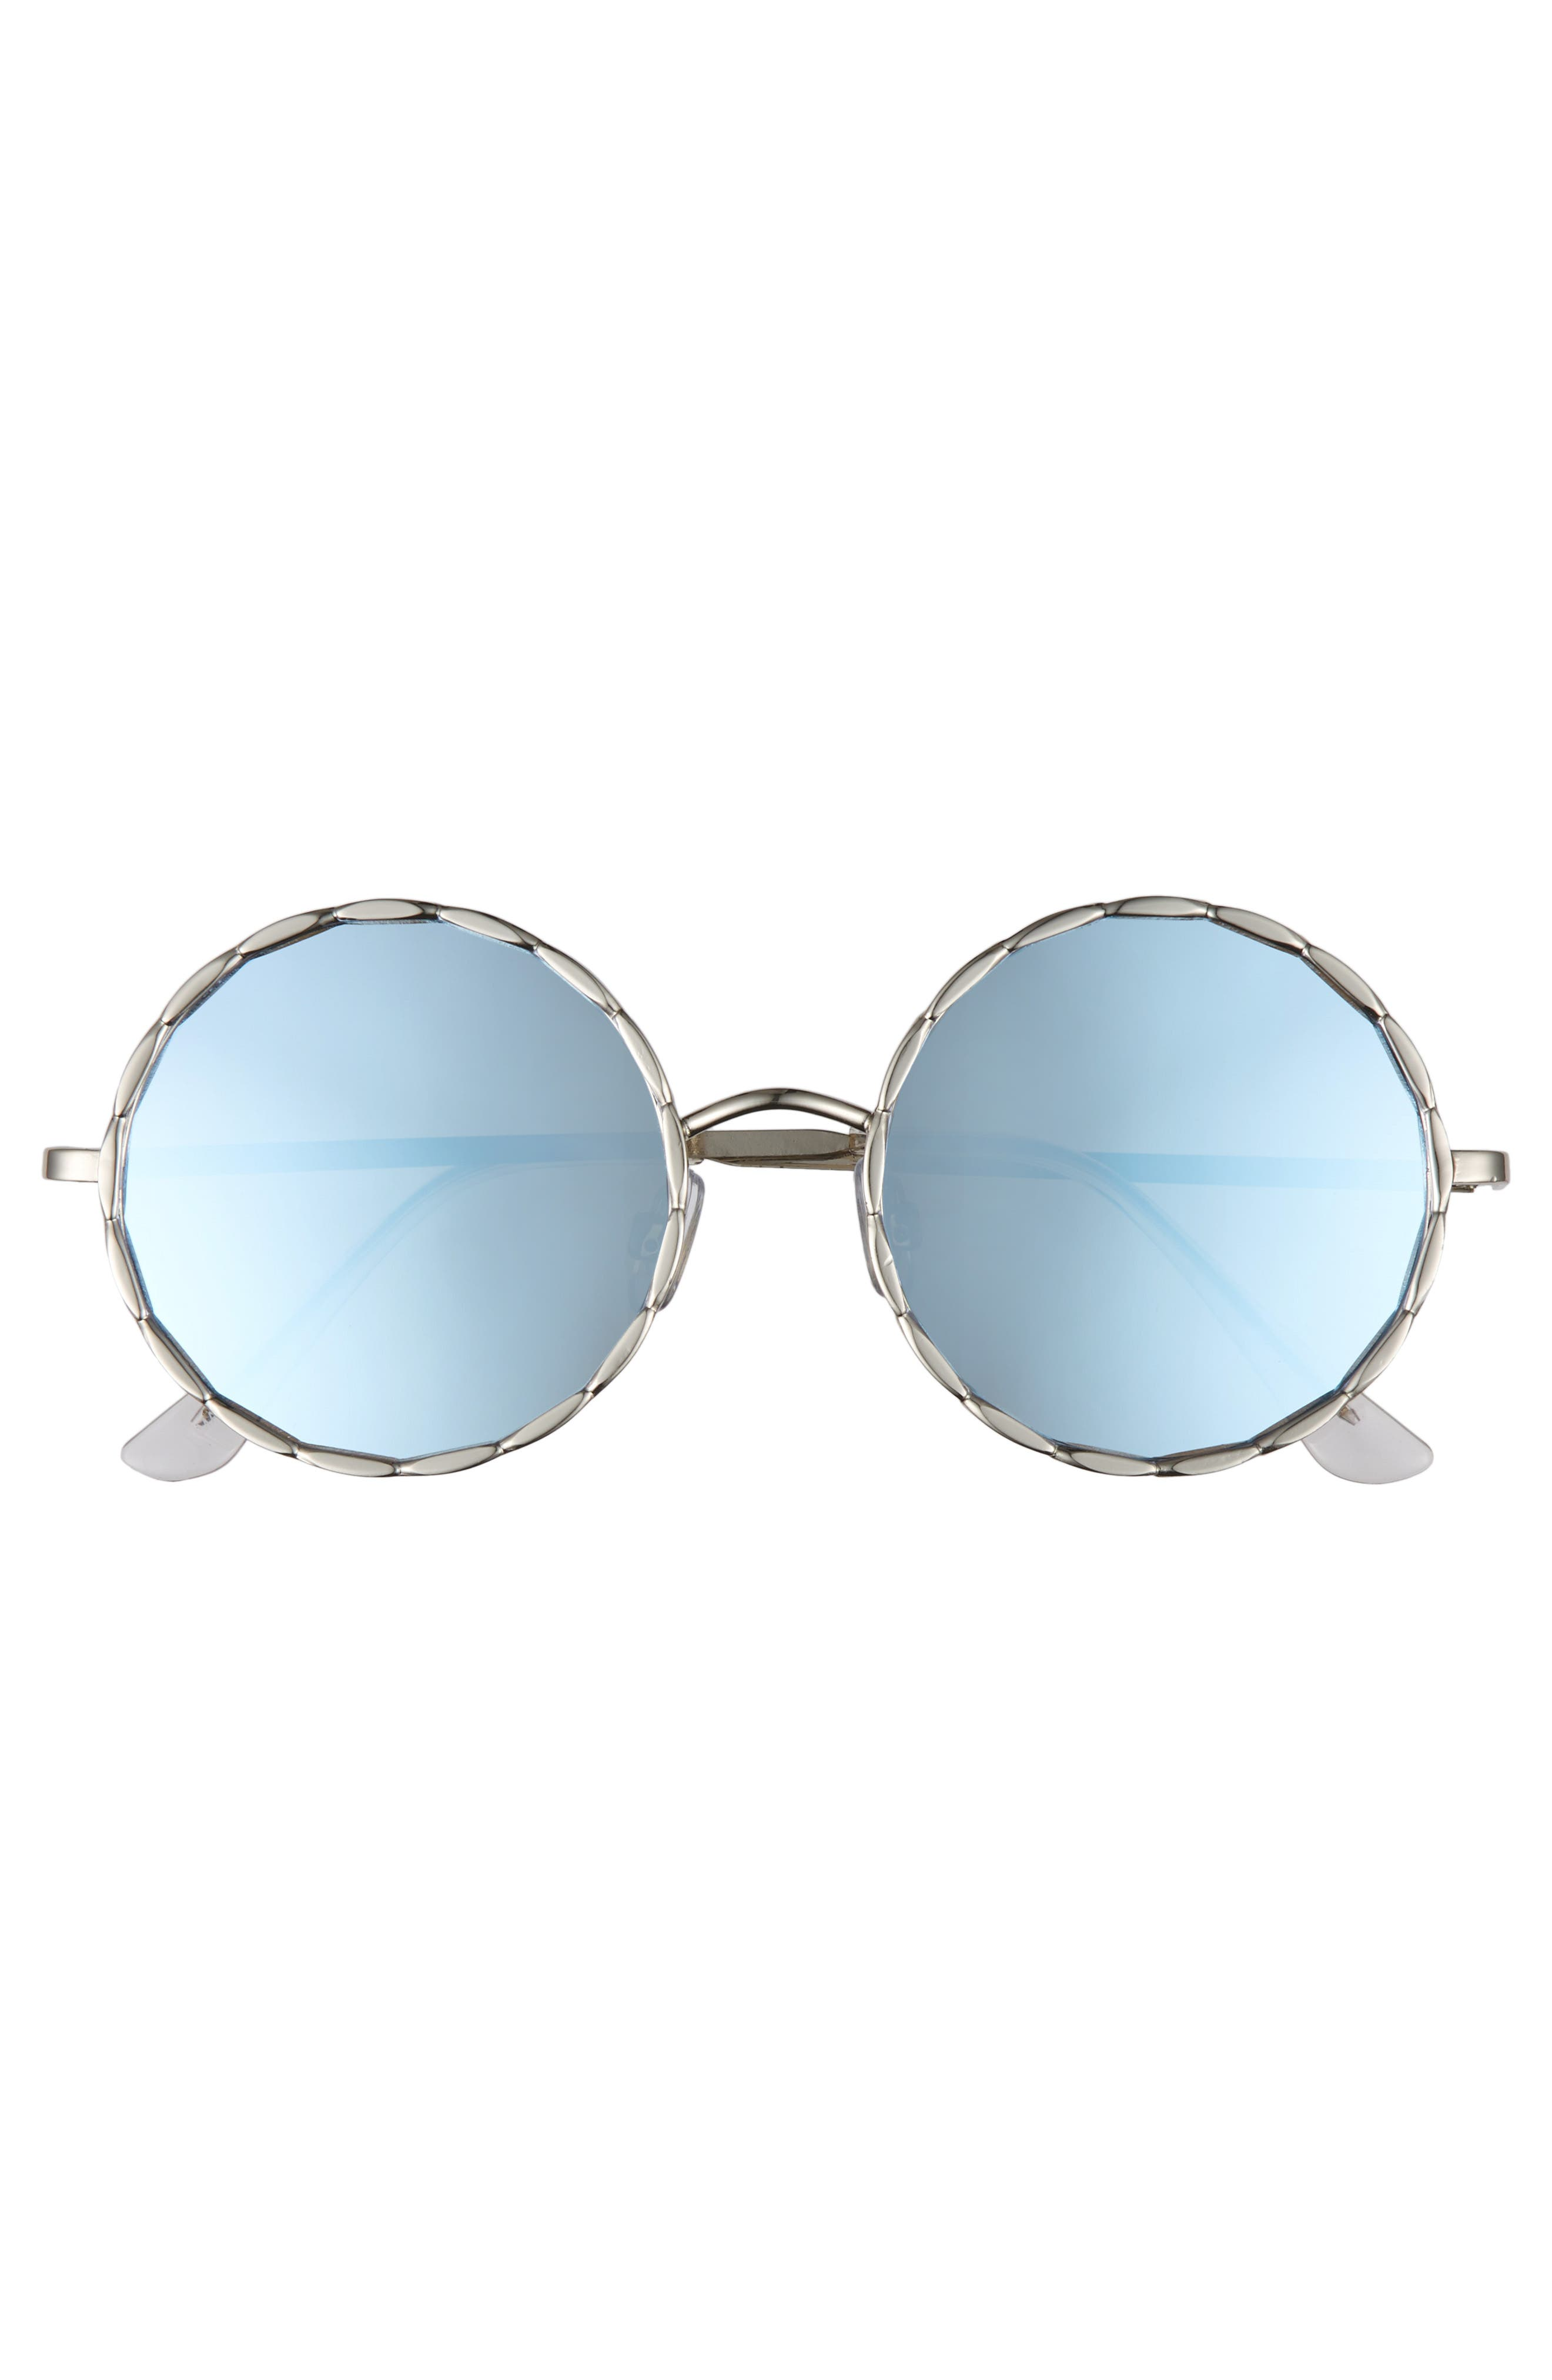 58mm Textured Round Sunglasses,                             Alternate thumbnail 3, color,                             040